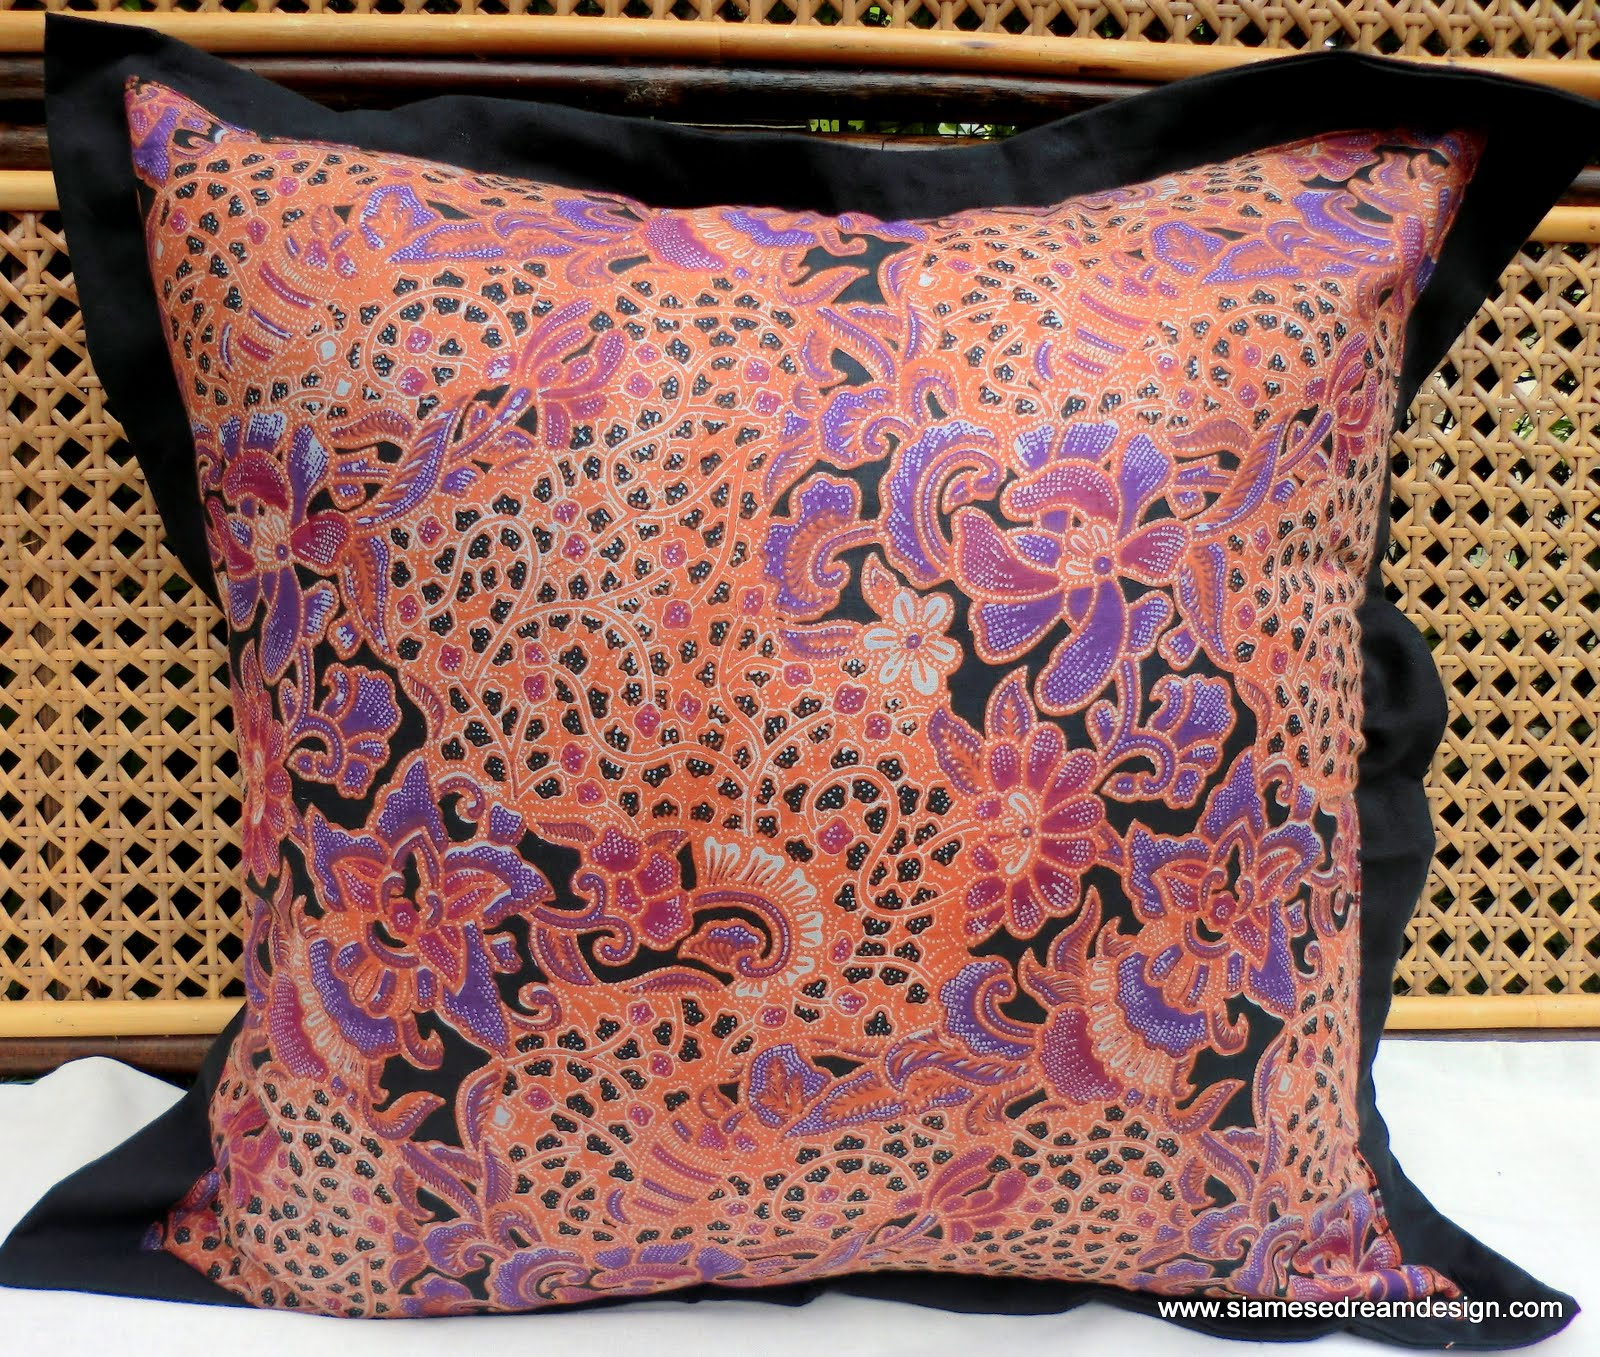 Xl Floor Pillows : XL Floor Pillow Or Cushion Cover In Colorful Natural Balinese Batik Peach And Lavender 24 Inch ...